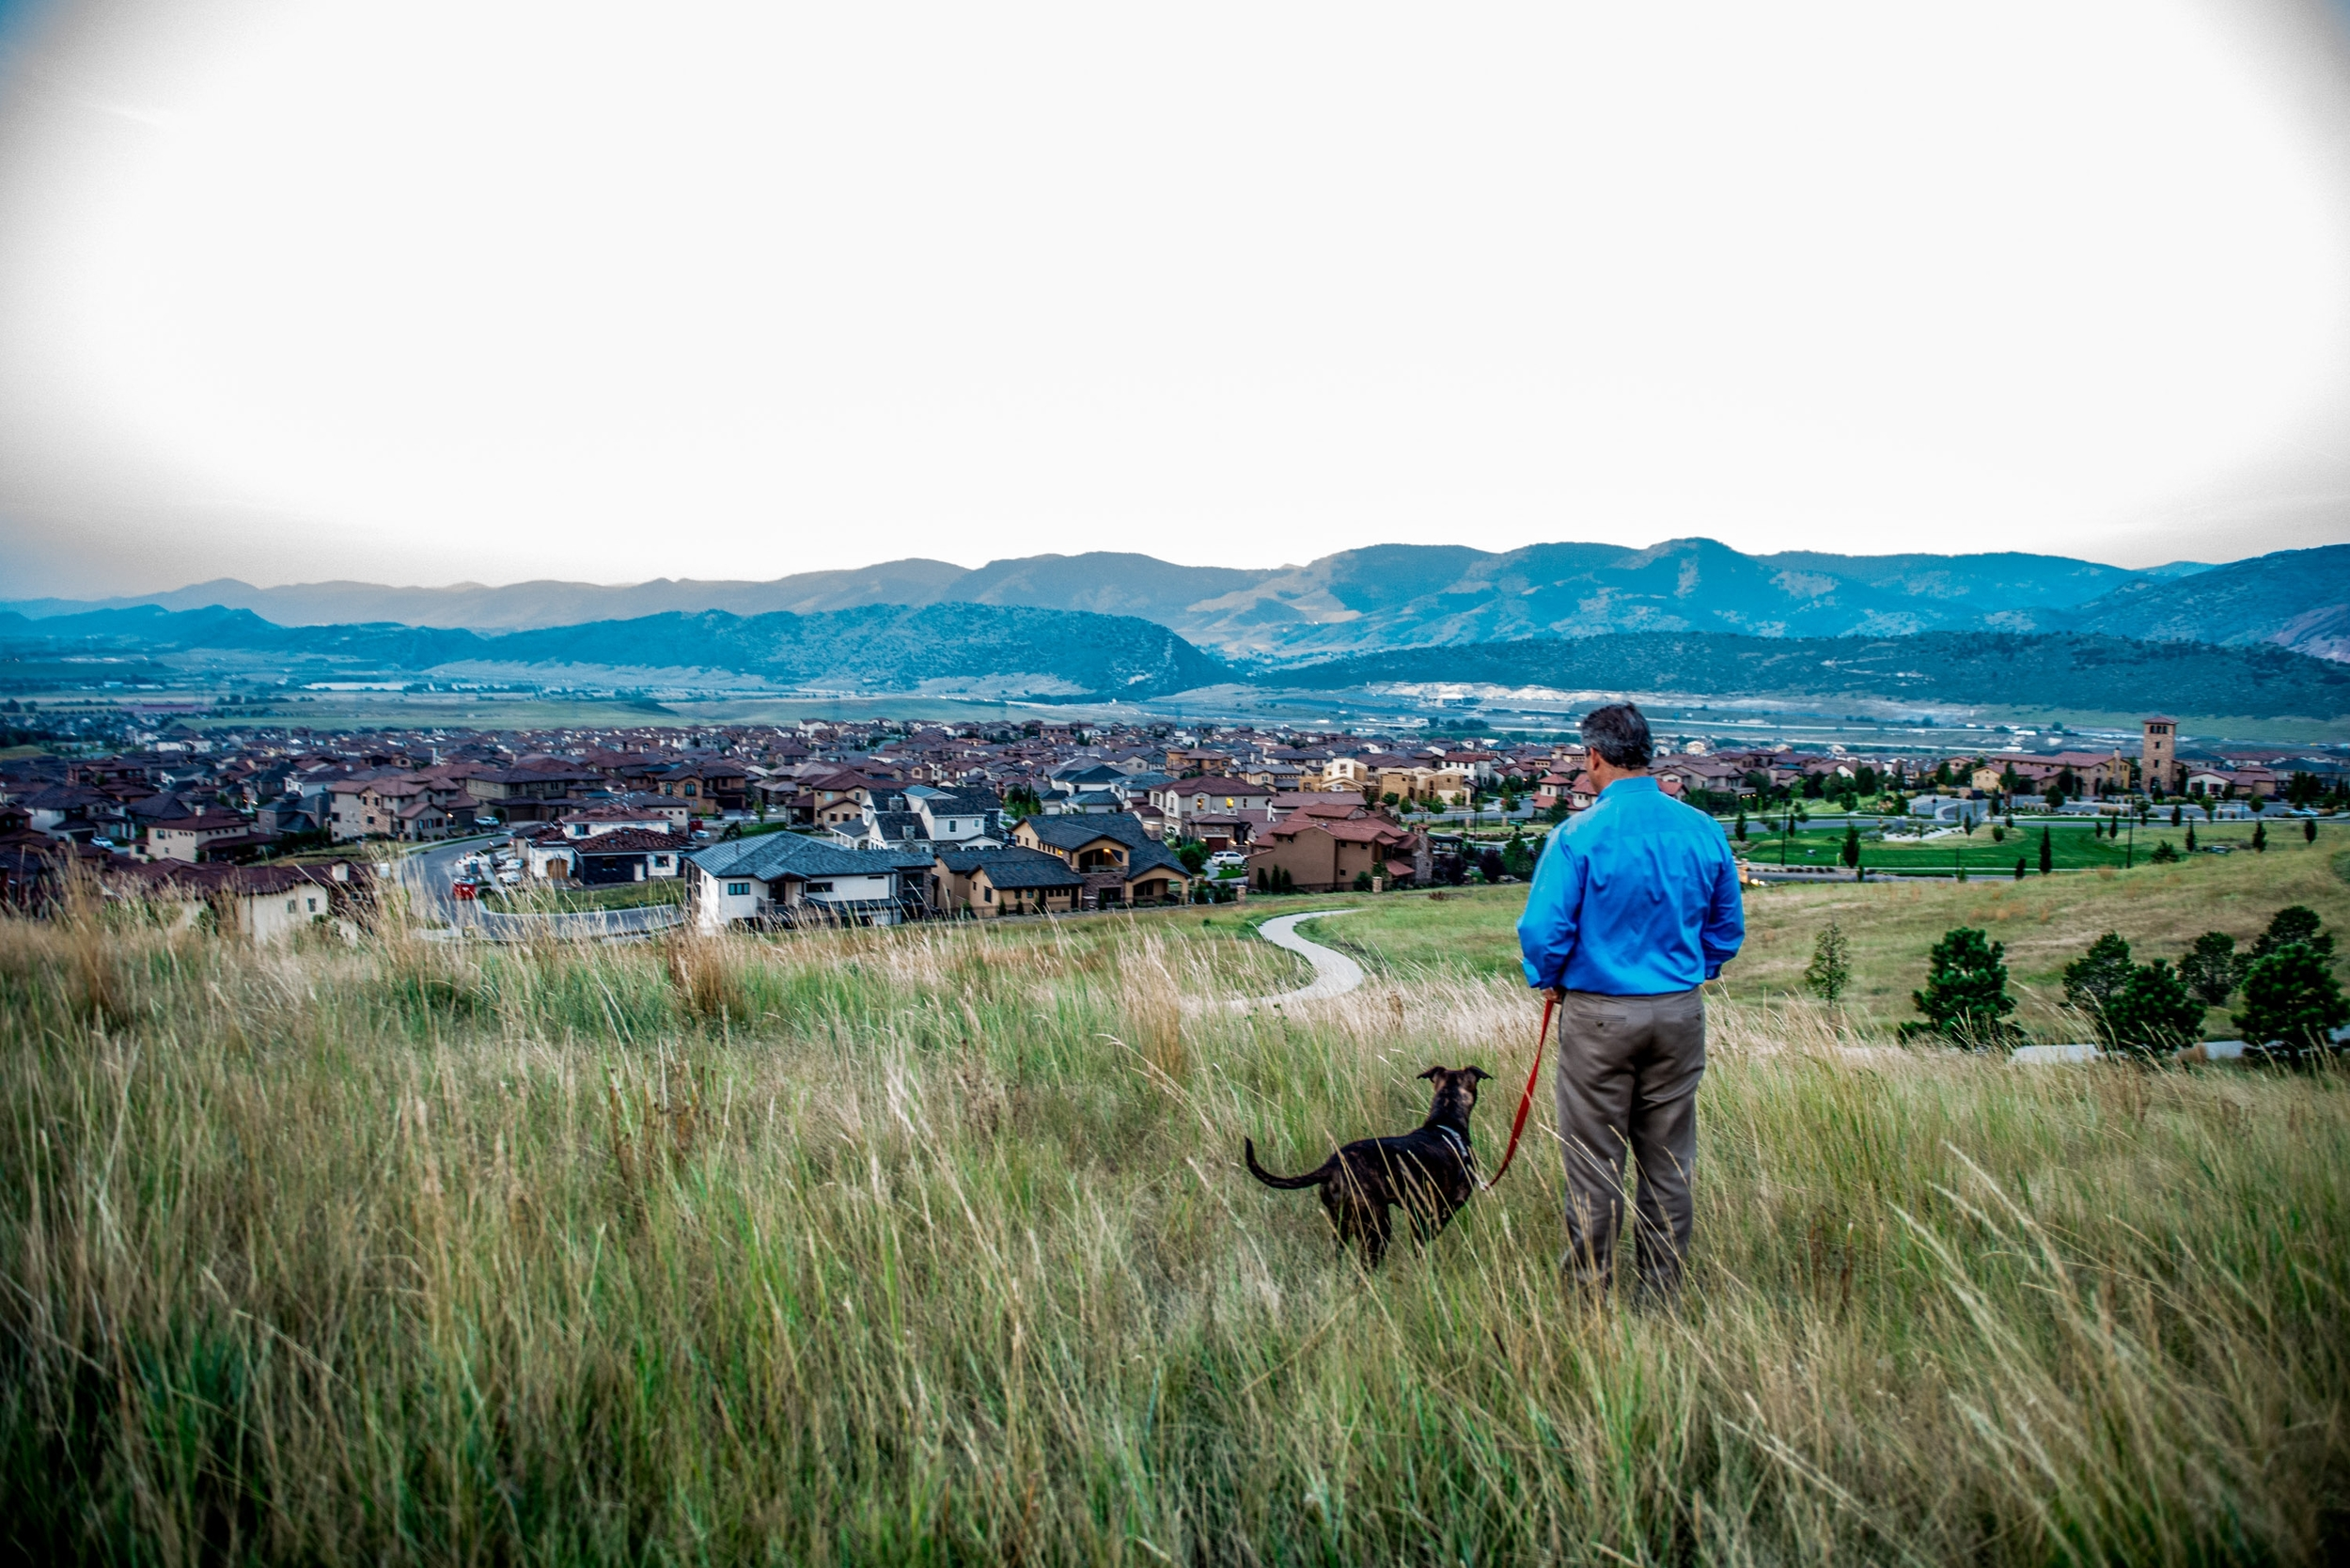 Andrew and his dog overlooking beautiful Solterra and the foothills